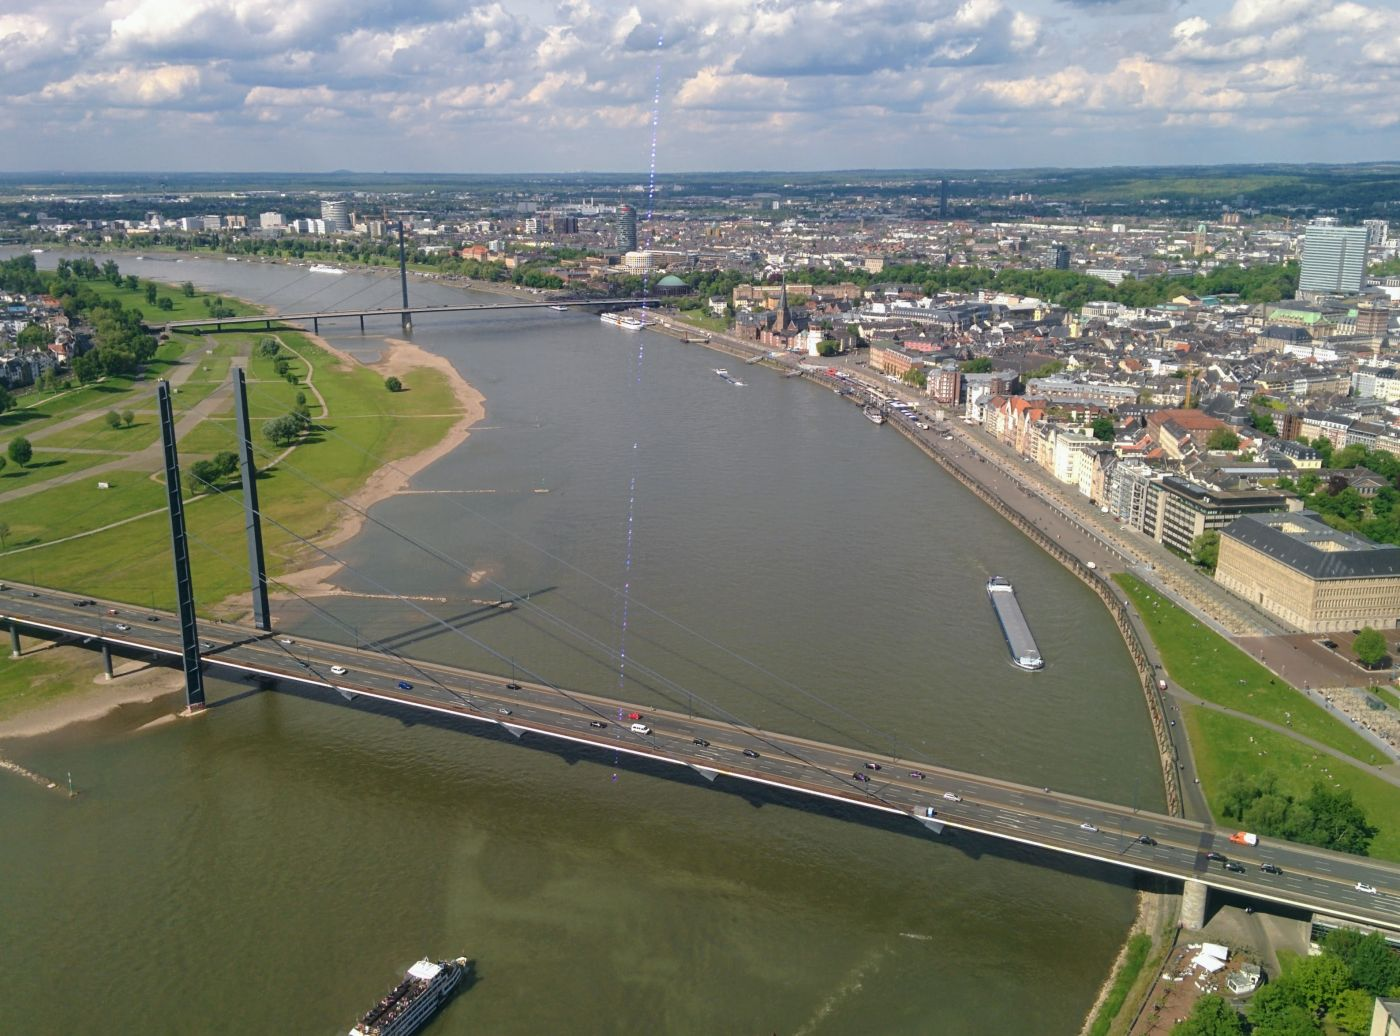 View of Düsseldorf and the River Rhine taken in 2017 from Rhine Tower